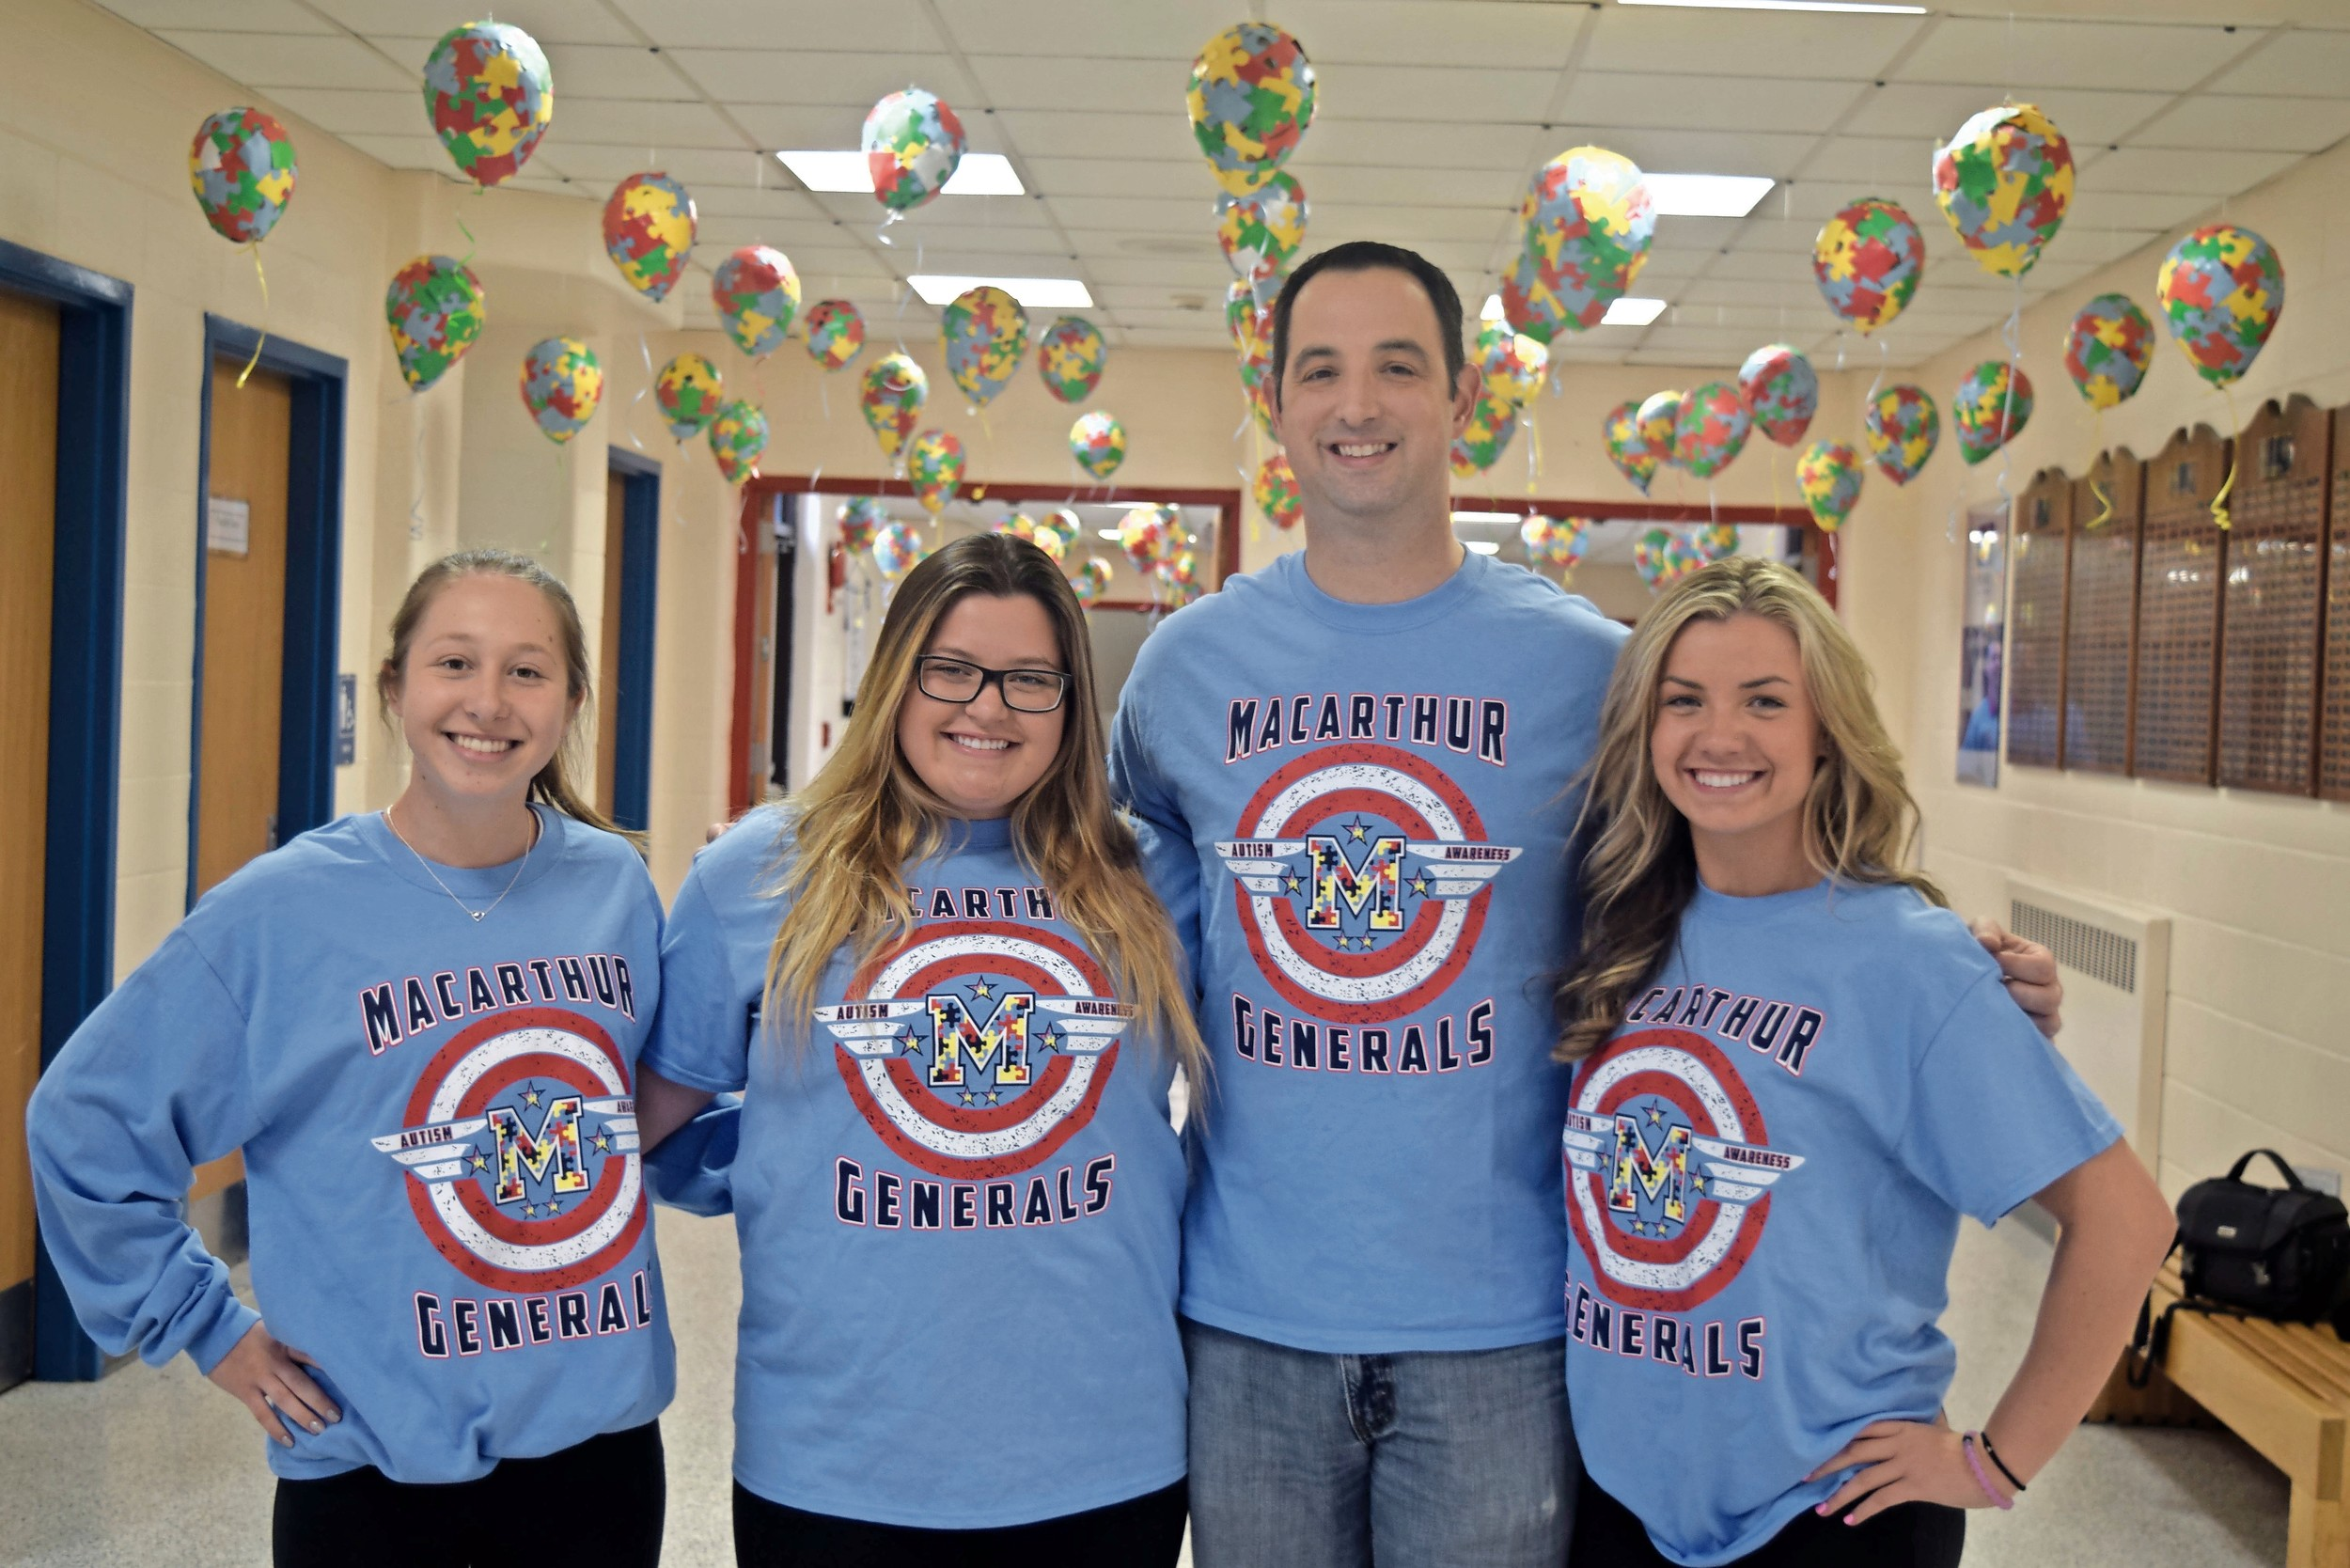 Seniors Katelyn Politi, far left, Ashley Arnold and Victoria Sullivan, here with Causeman, created decorations.